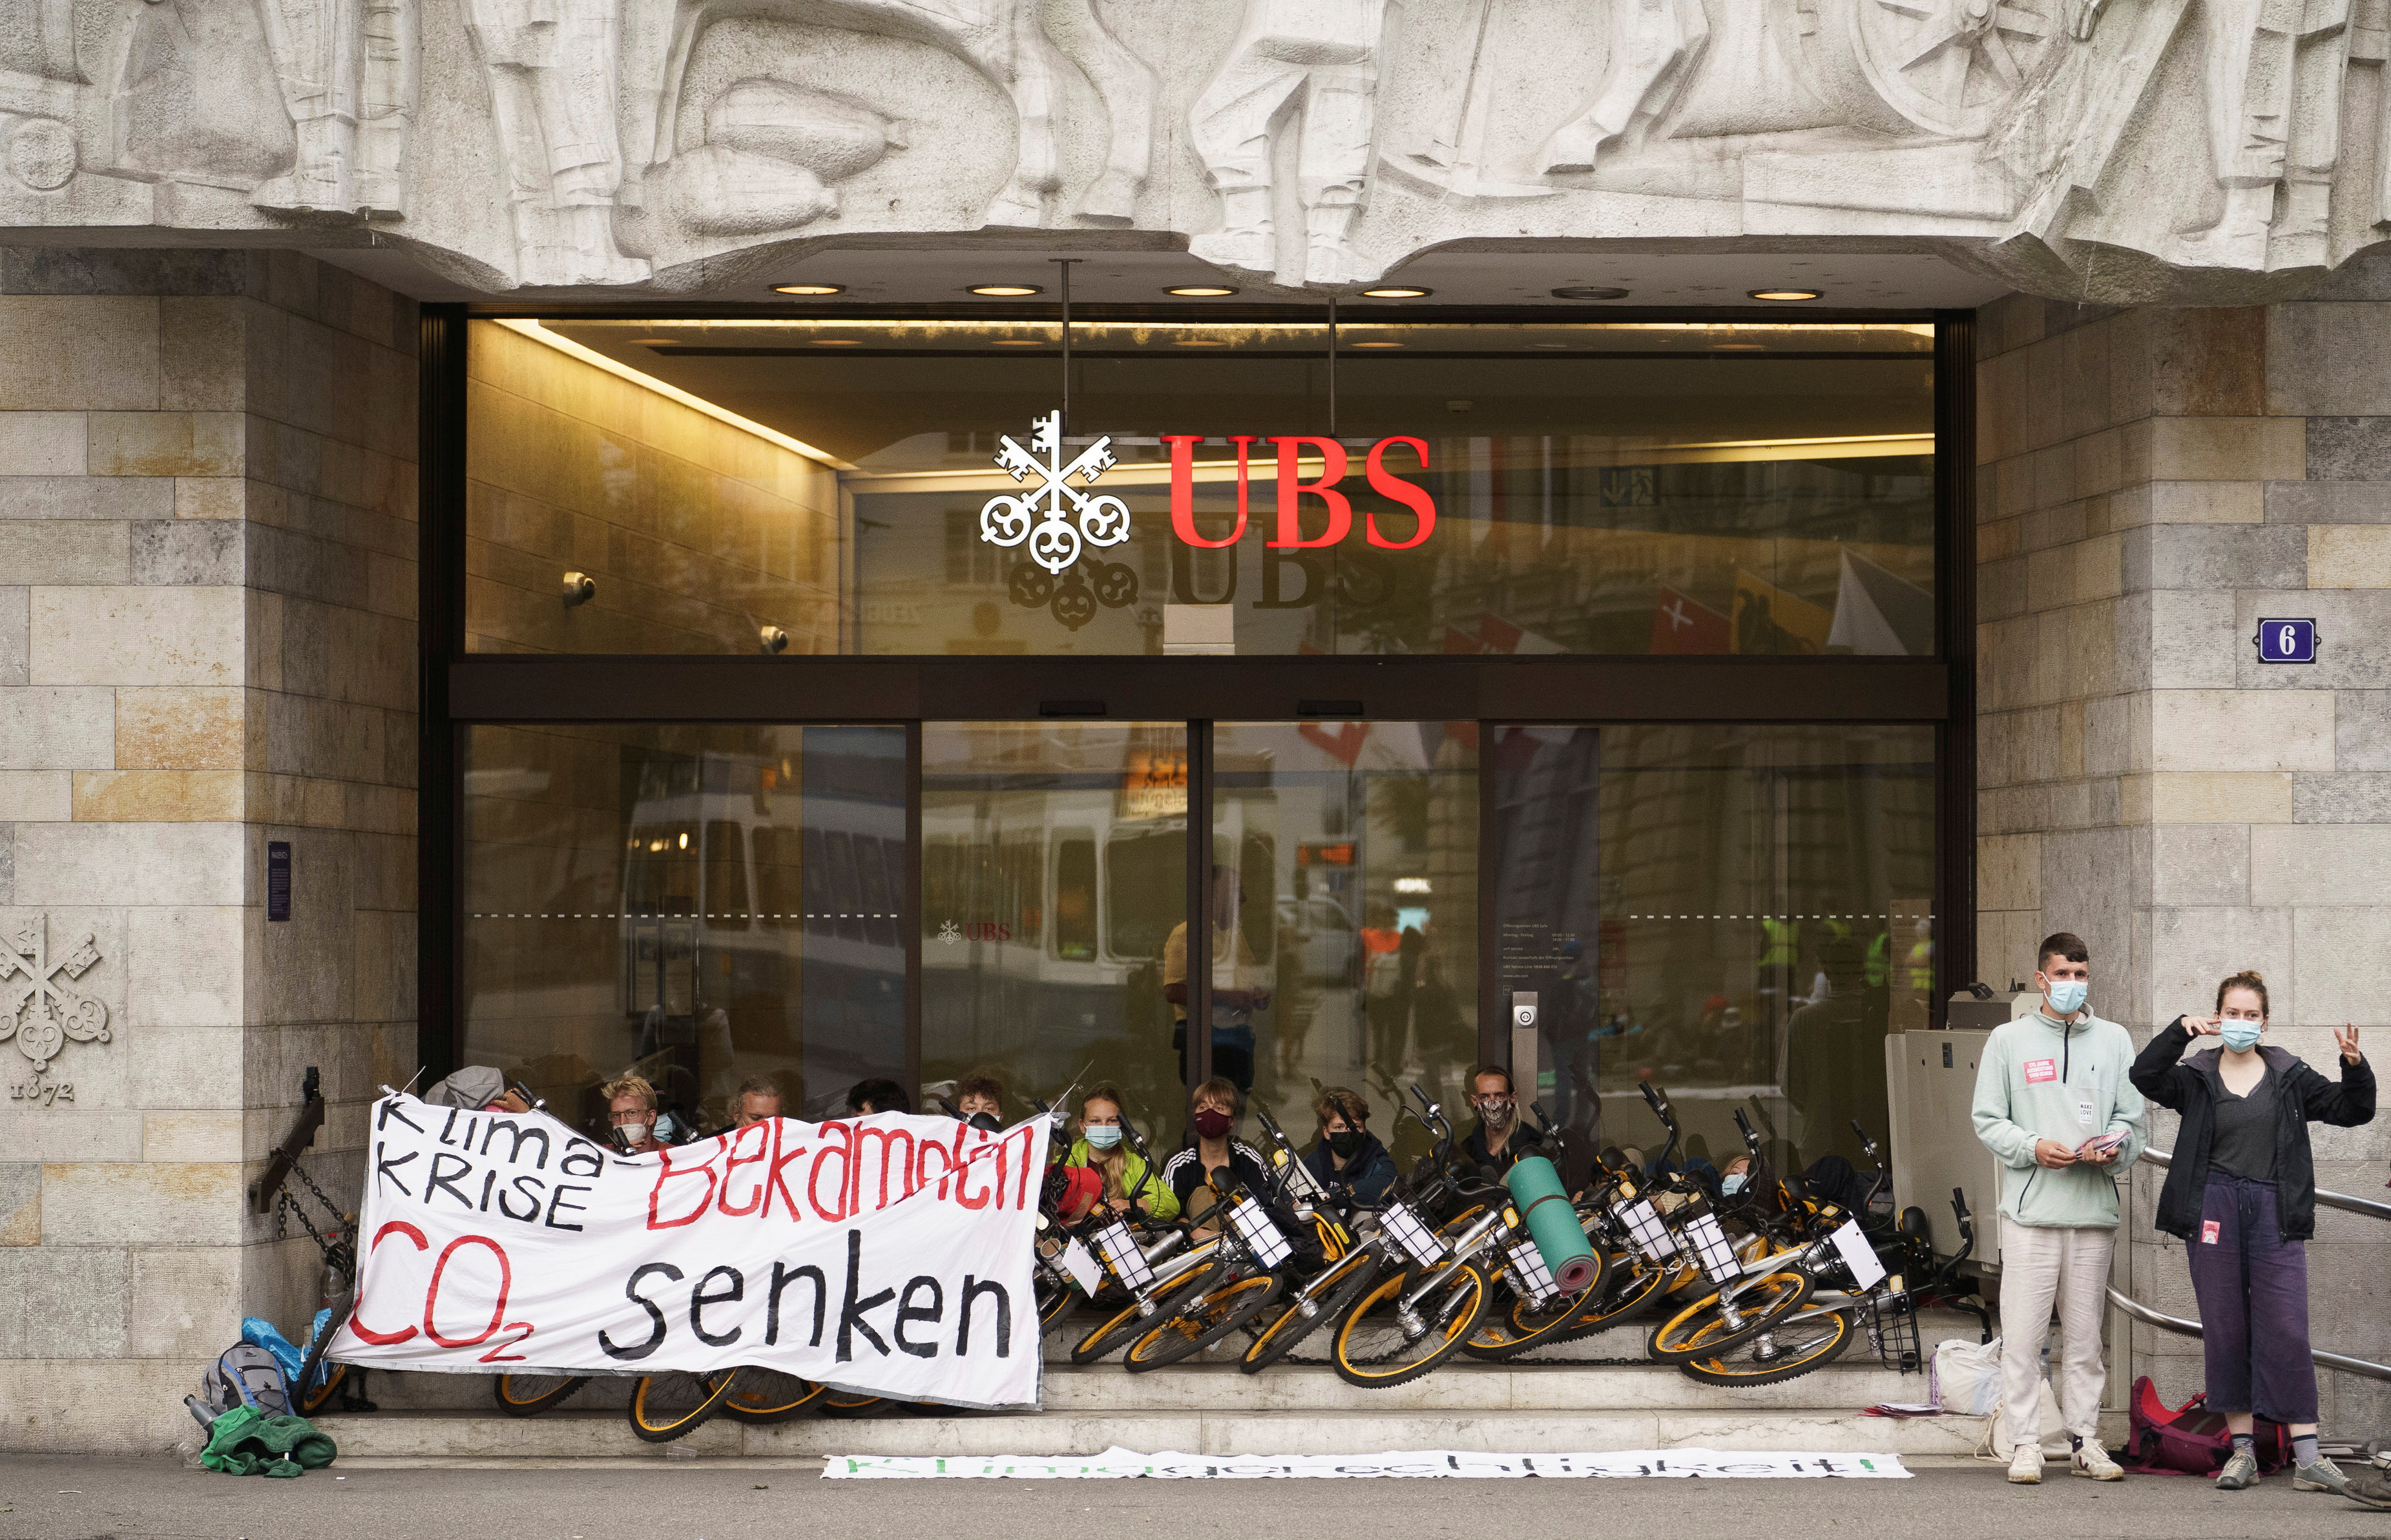 """Climate activists of """"Rise up for Change"""" block an entrance of UBS to protest against big banks' financing of fossil fuel projects that damage the environment in Zurich, Germany, August 2, 2021. Schweiz Rise Up For Change/Handout via REUTERS"""